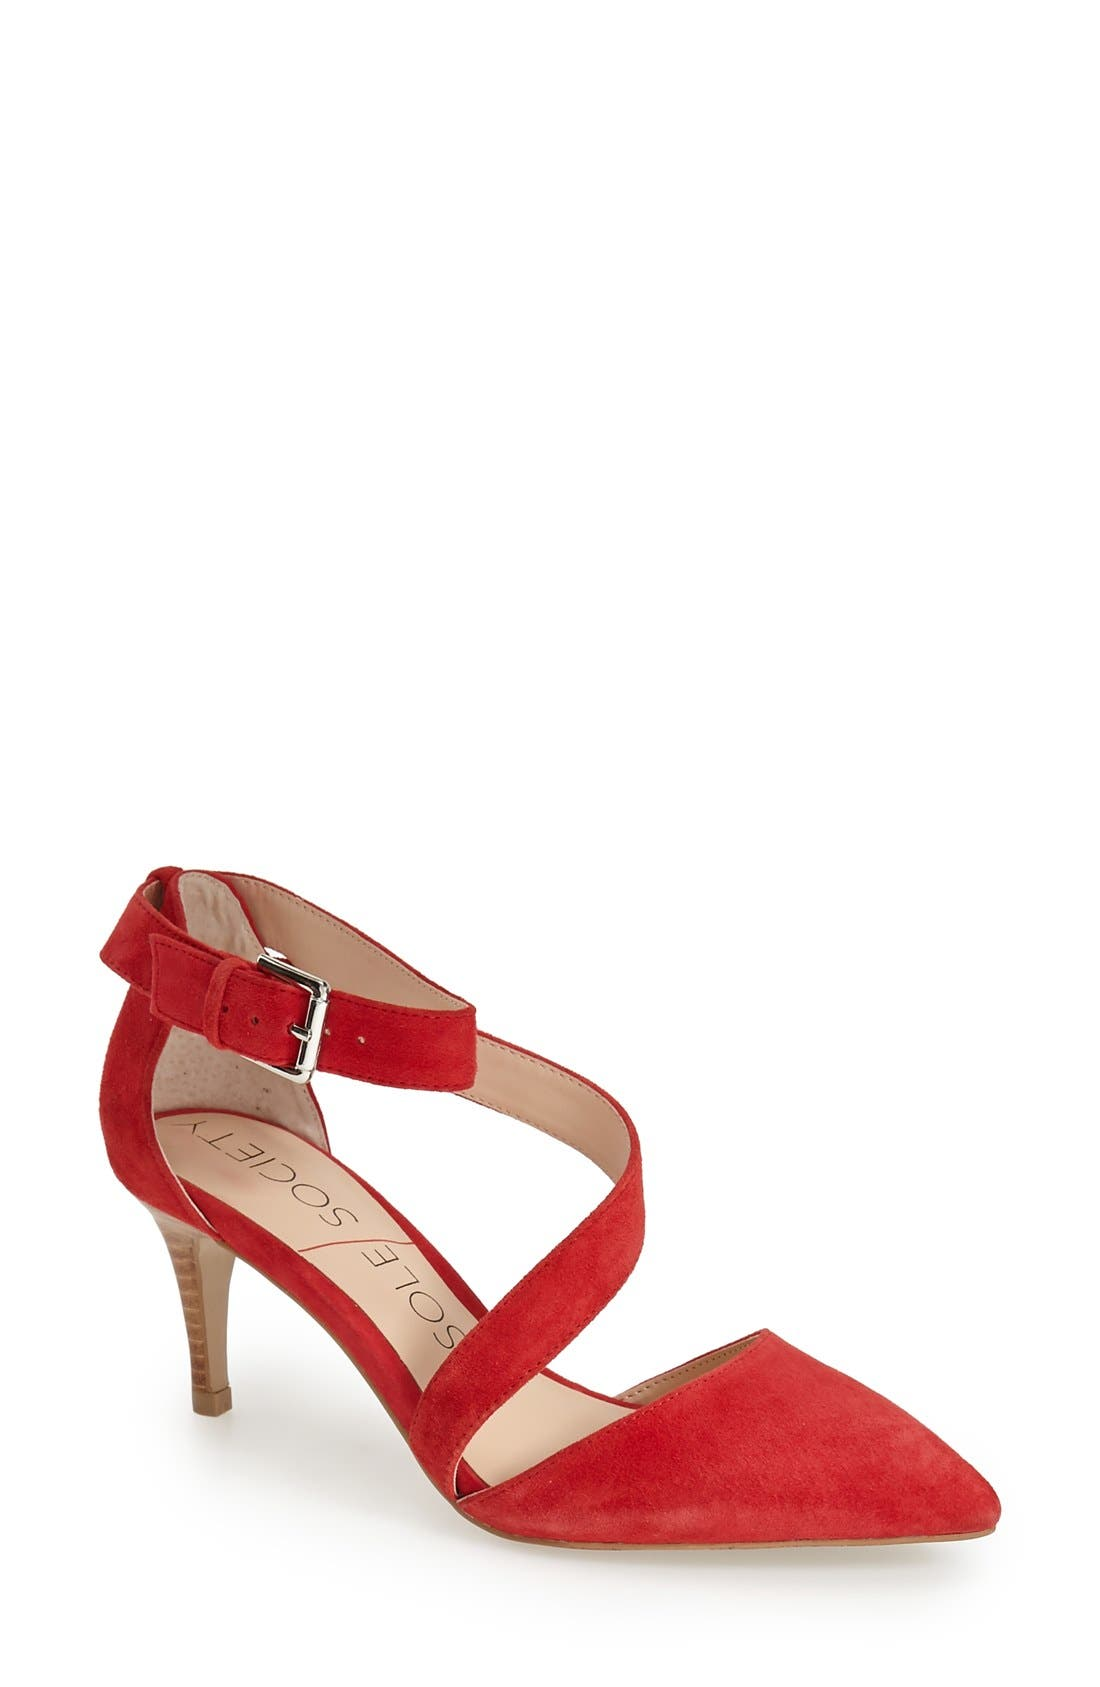 Alternate Image 1 Selected - Sole Society 'Cassia' Pointy Toe Pump (Women)